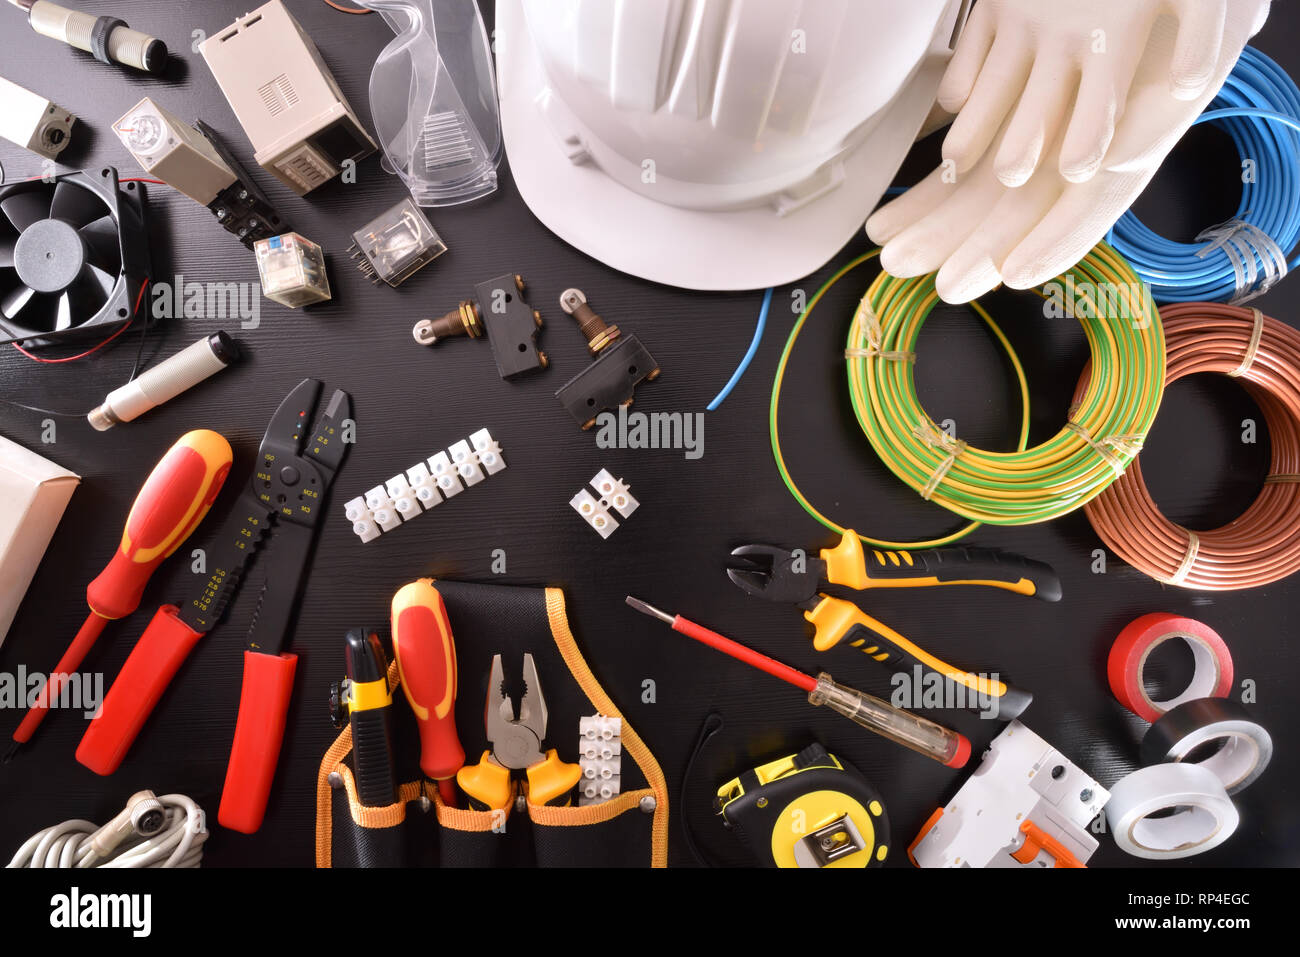 Black table with industrial equipment and tools for installation, repair and maintenance of electrical panels and electrical machinery. Horizontal com - Stock Image